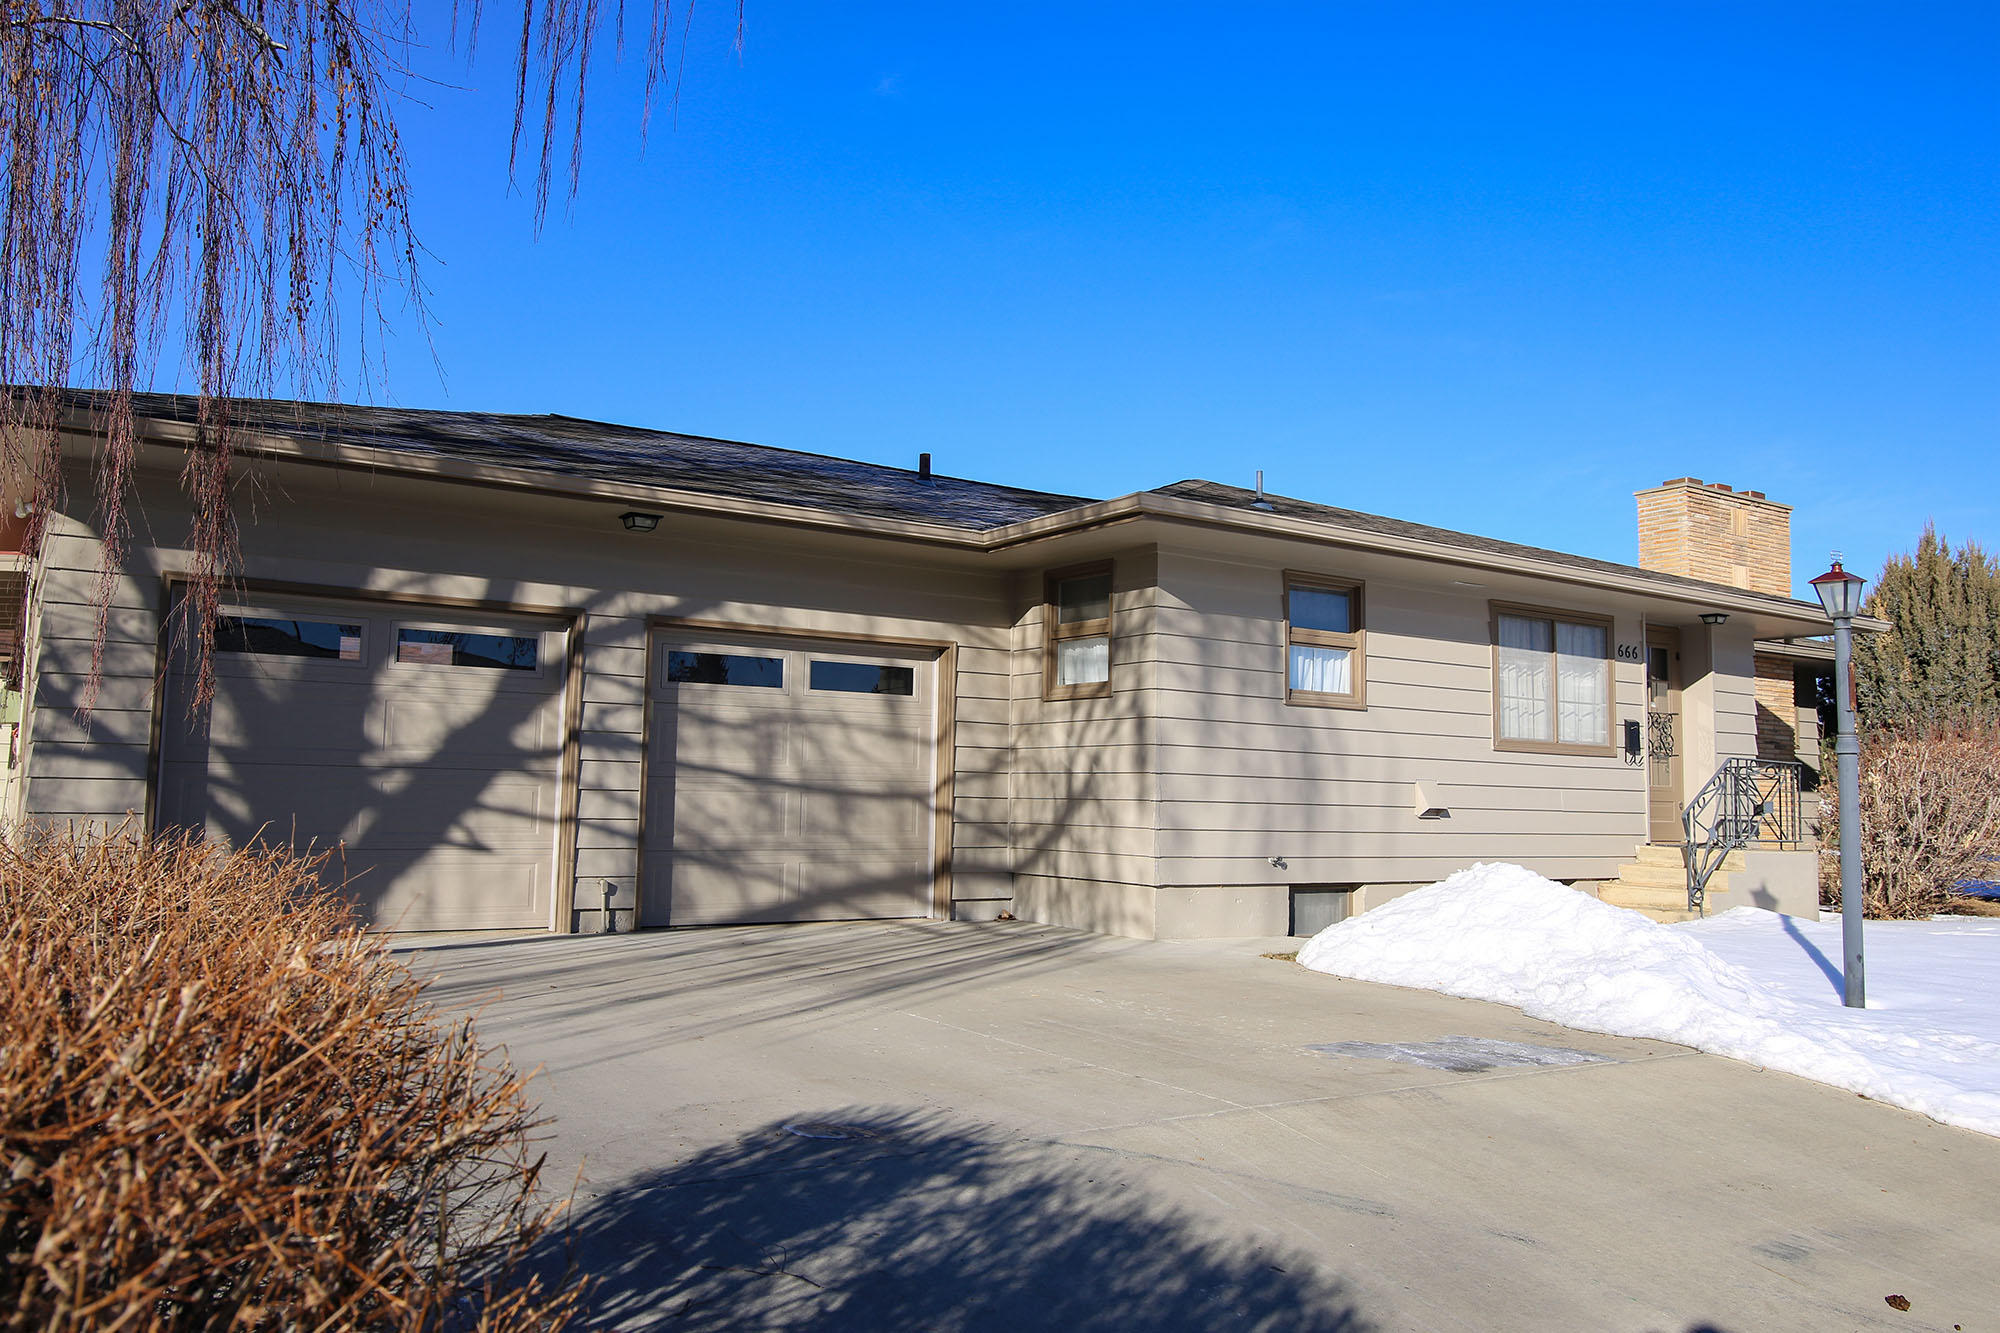 666 Exeter Avenue, Sheridan, Wyoming 82801, 3 Bedrooms Bedrooms, ,2 BathroomsBathrooms,Residential,For Sale,Exeter,19-52